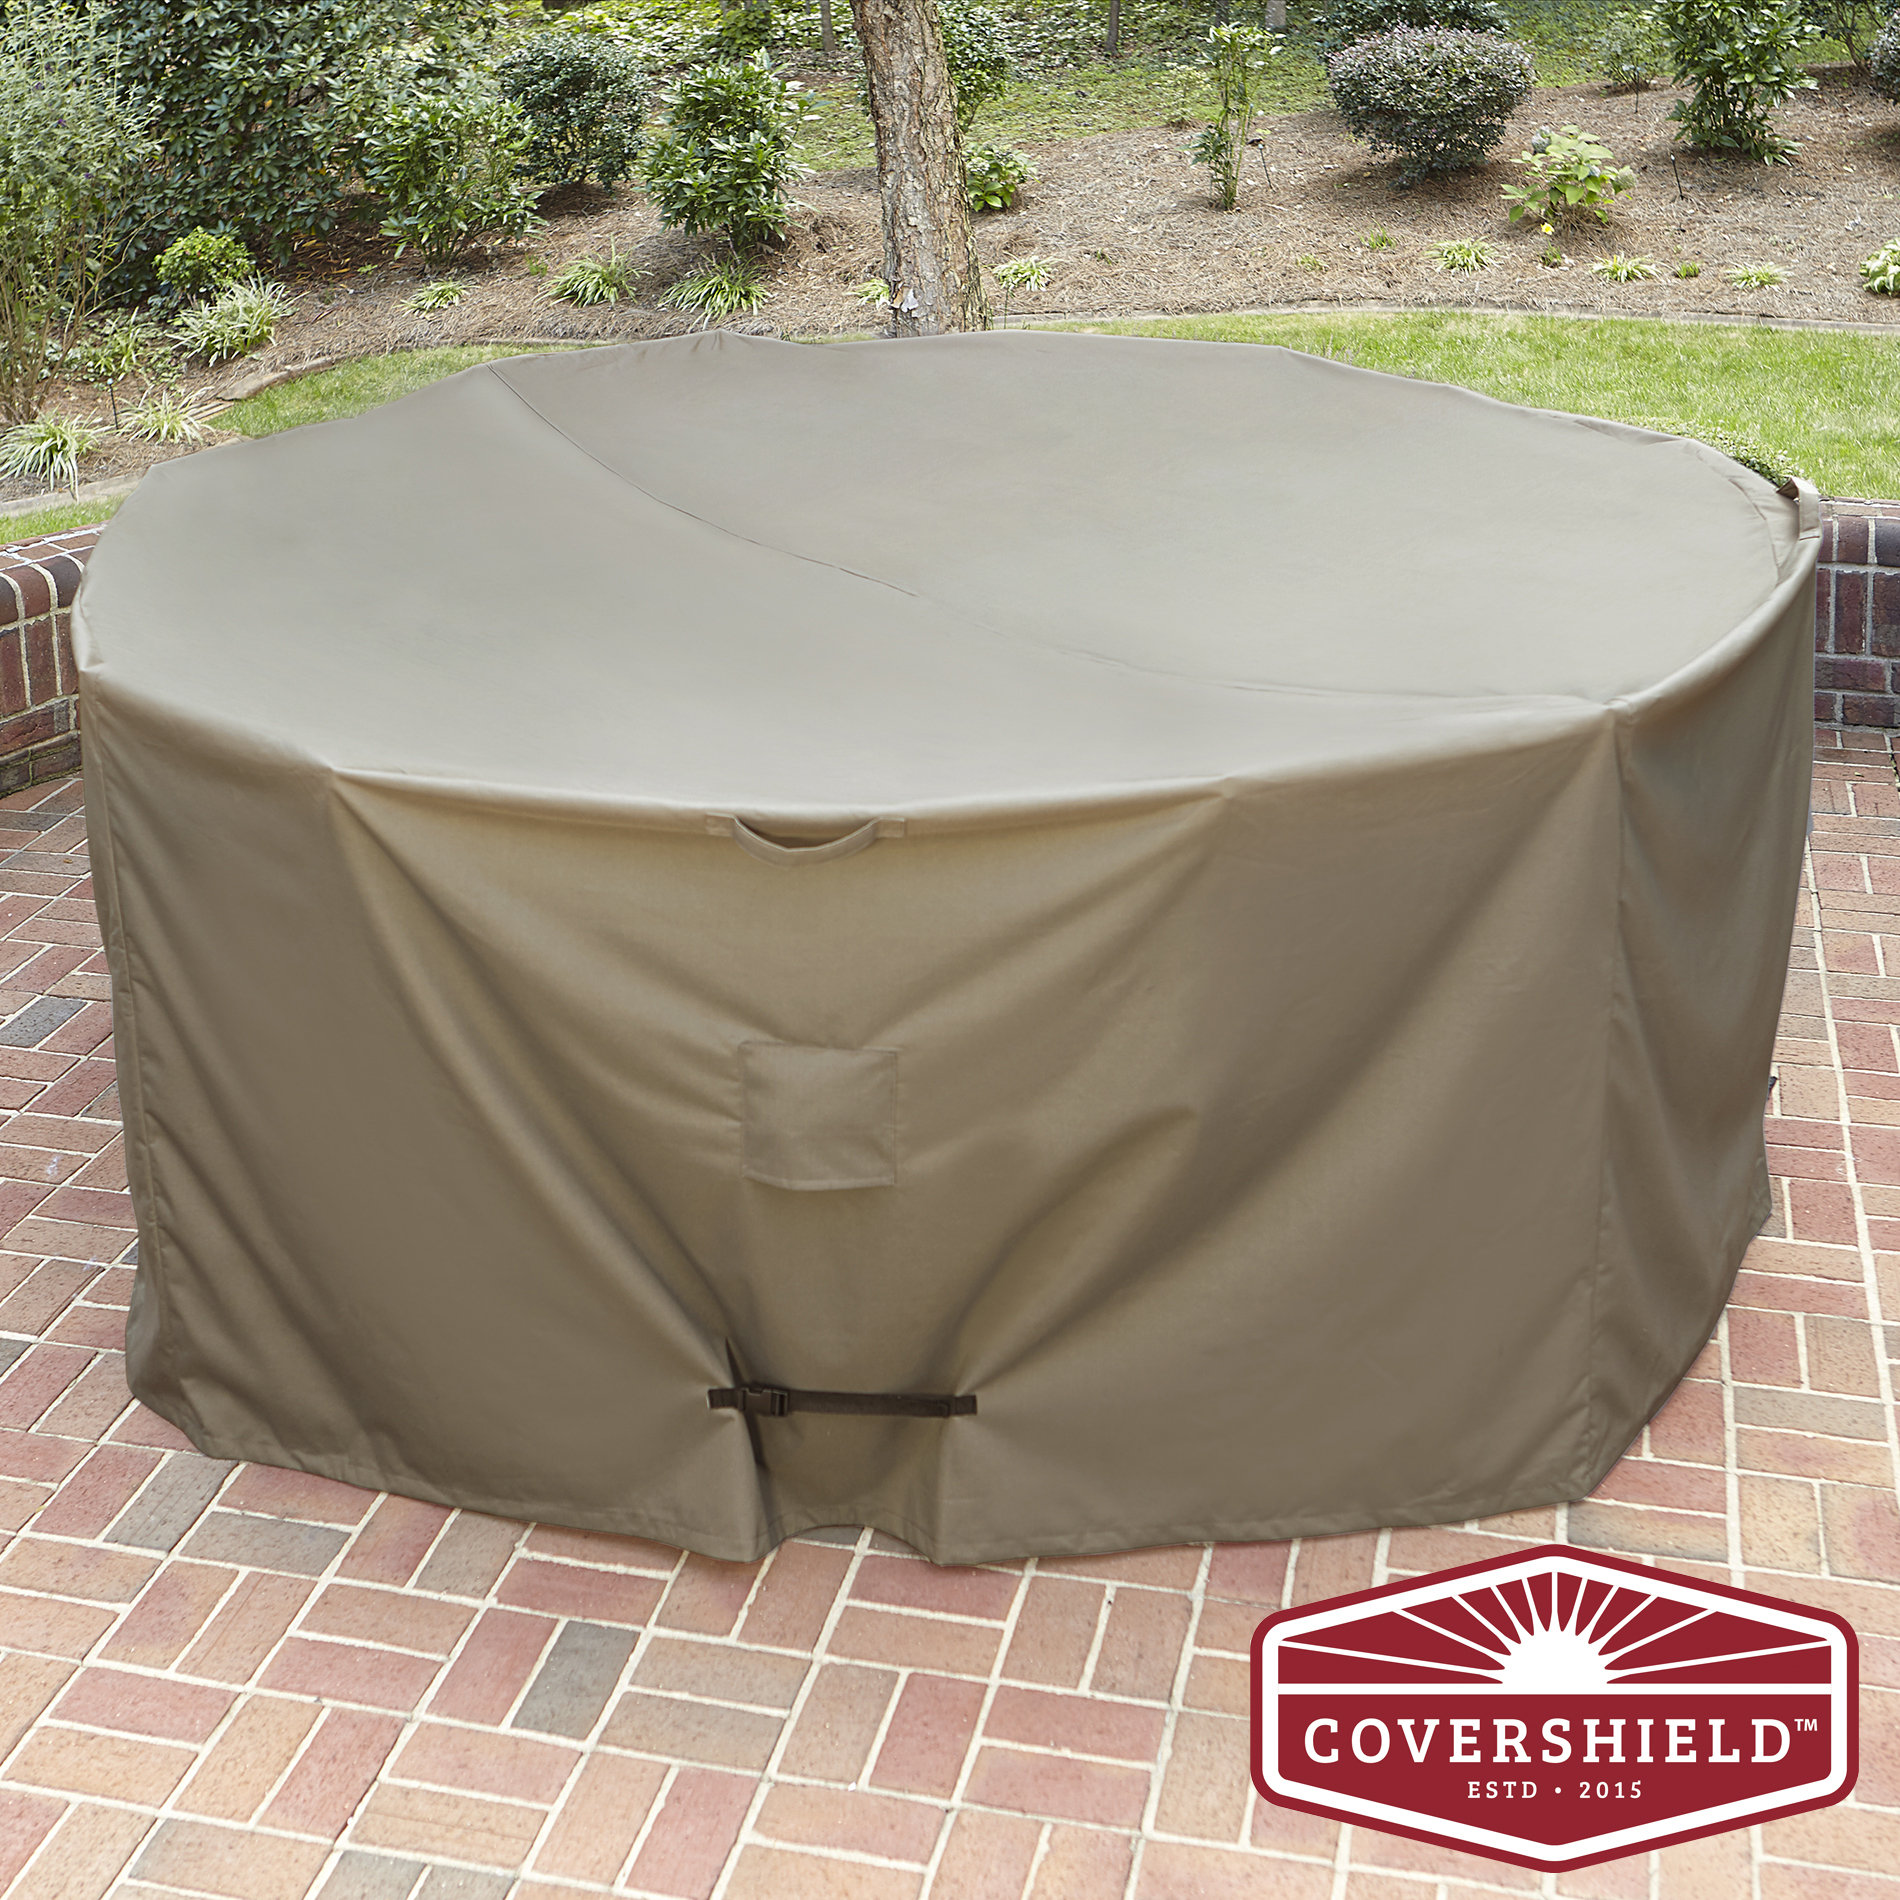 Covershield Oversized Furniture Cover- Elite